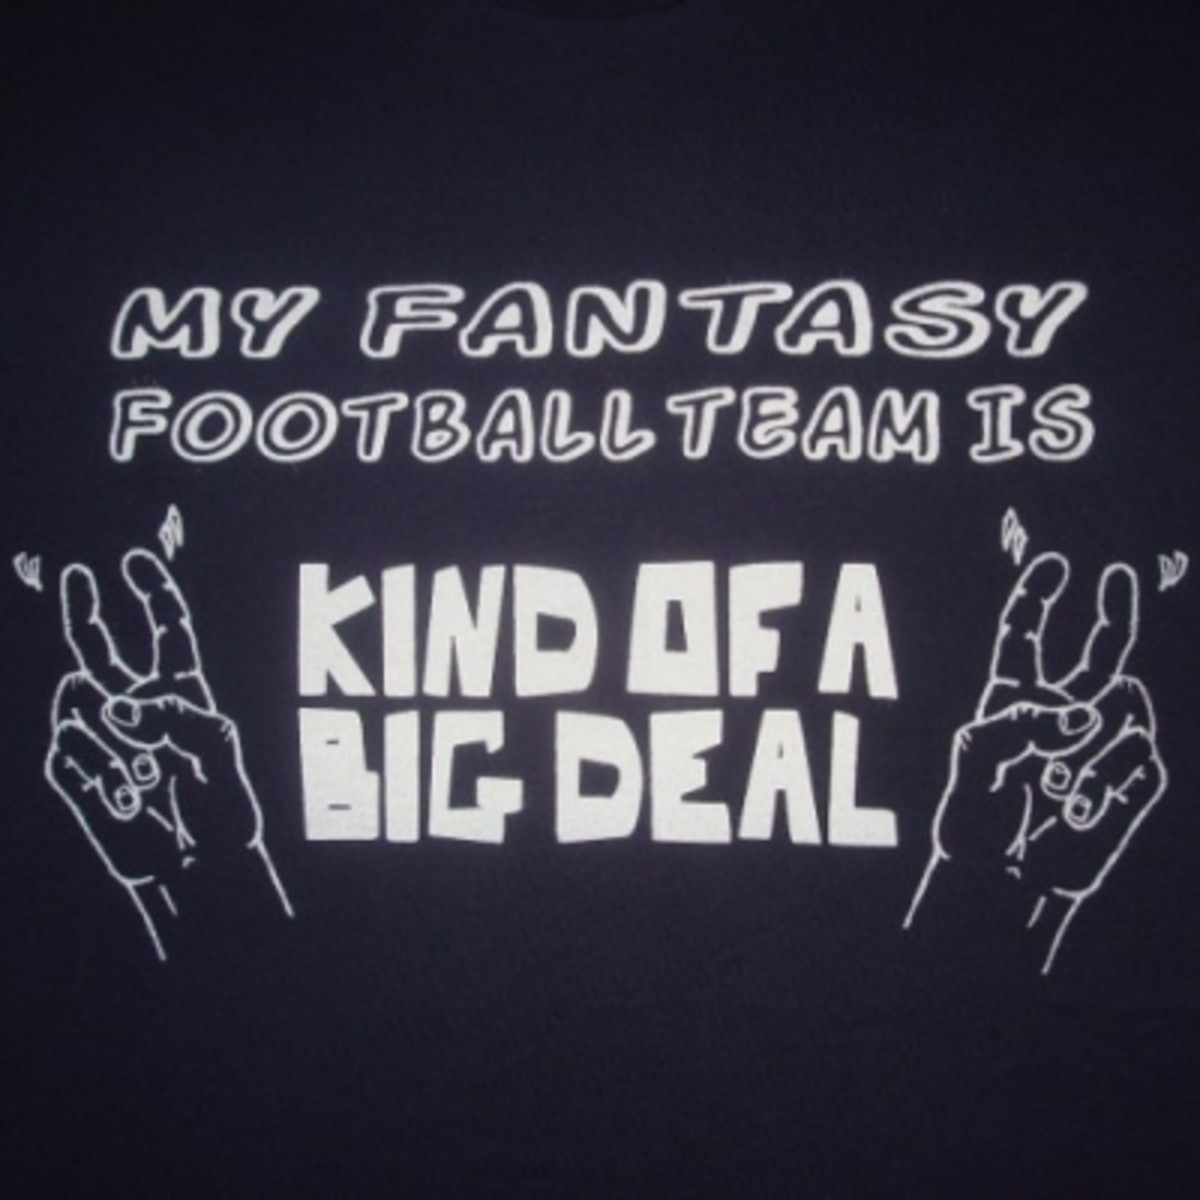 Funny Fantasy Football Team Names 2013